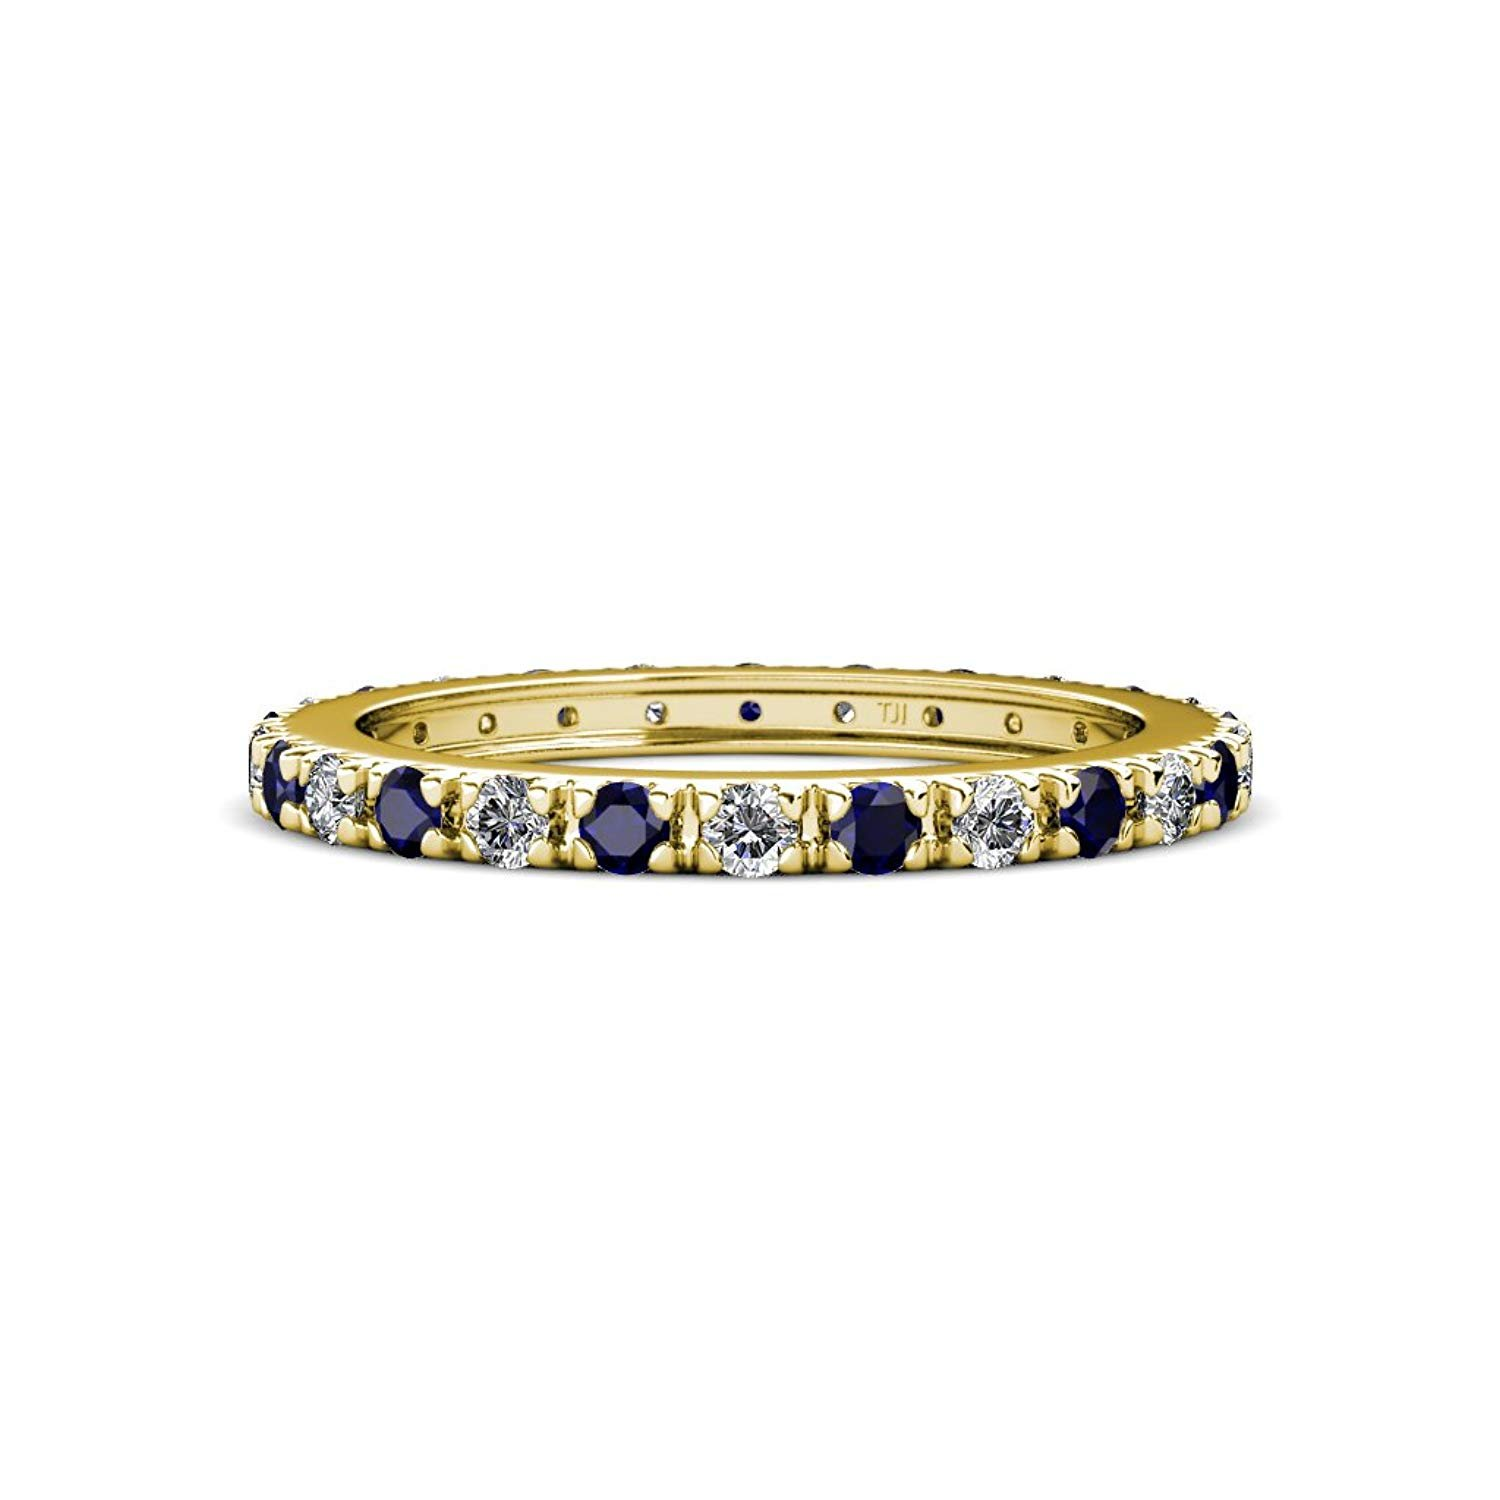 Blue Sapphire and Diamond French Set Eternity Band 0.82-0.98 Carat tw in 14K White Gold.size 5.0 by TriJewels